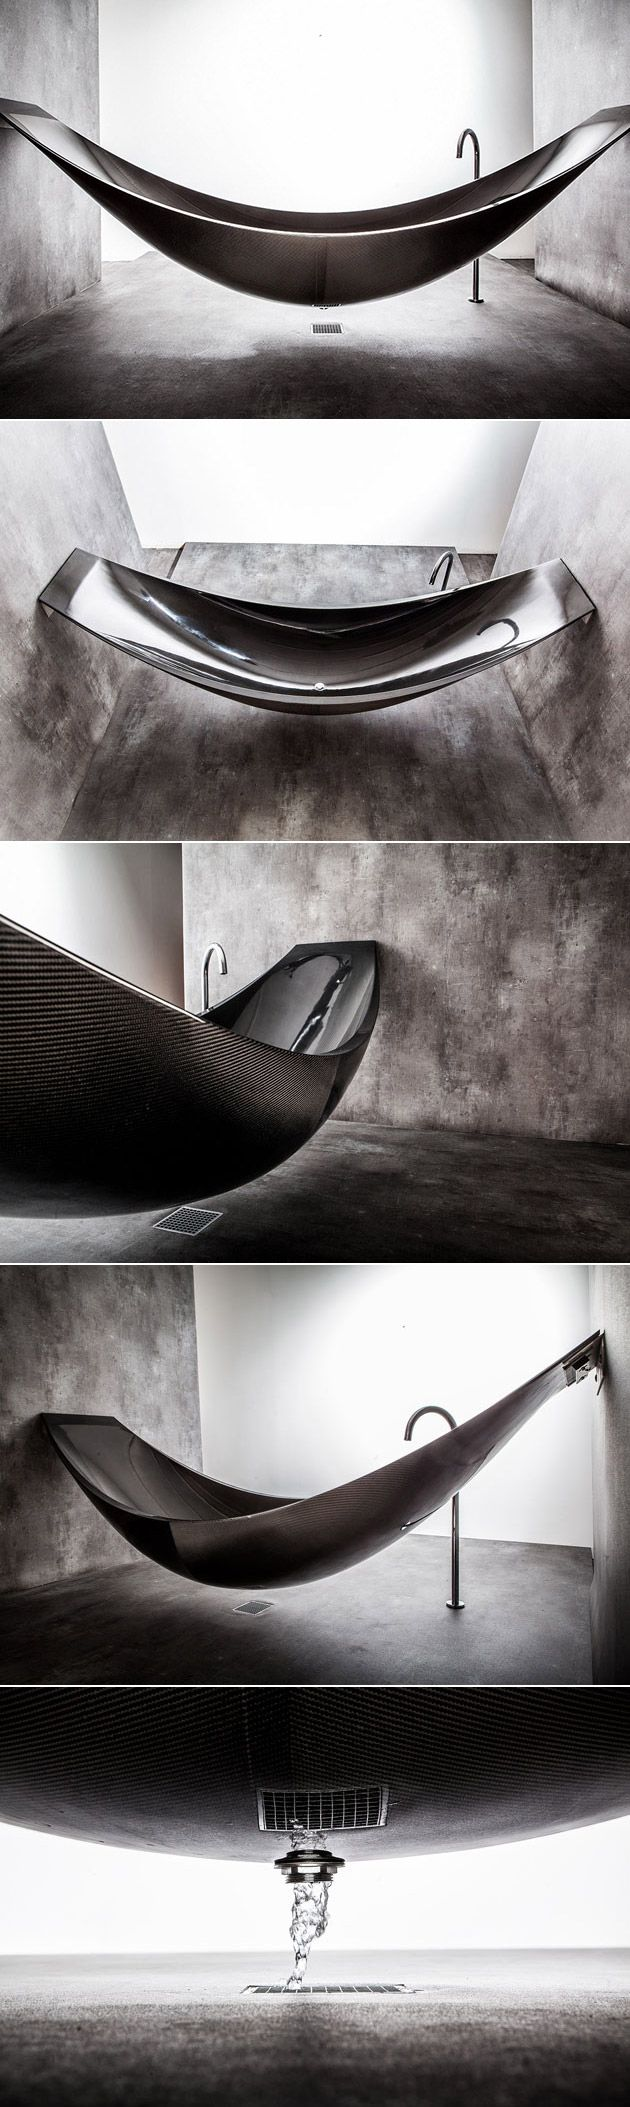 Dubbed the Carbon Fiber Vessel Bathtub, the tub is the perfect way to unwind after a long day. In its standard form, the Vessel measures in at 2.7 meters long (a bit longer than a normal bathtub), but it can also be completely customized to your space. The tub mounts between two walls, features a hole in the bottom for water drainage, and is available in a handful of colors including blue, red, bronze, pure silver, yellow, and even pink in addition to the black seen in the photos.